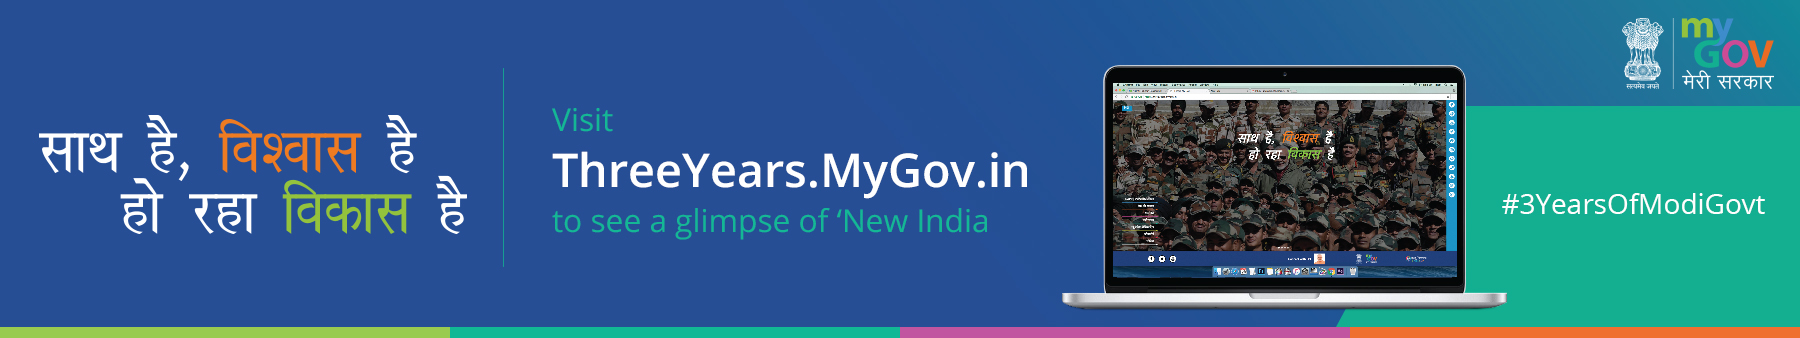 https://threeyears.mygov.in/ : External website that opens in a new window